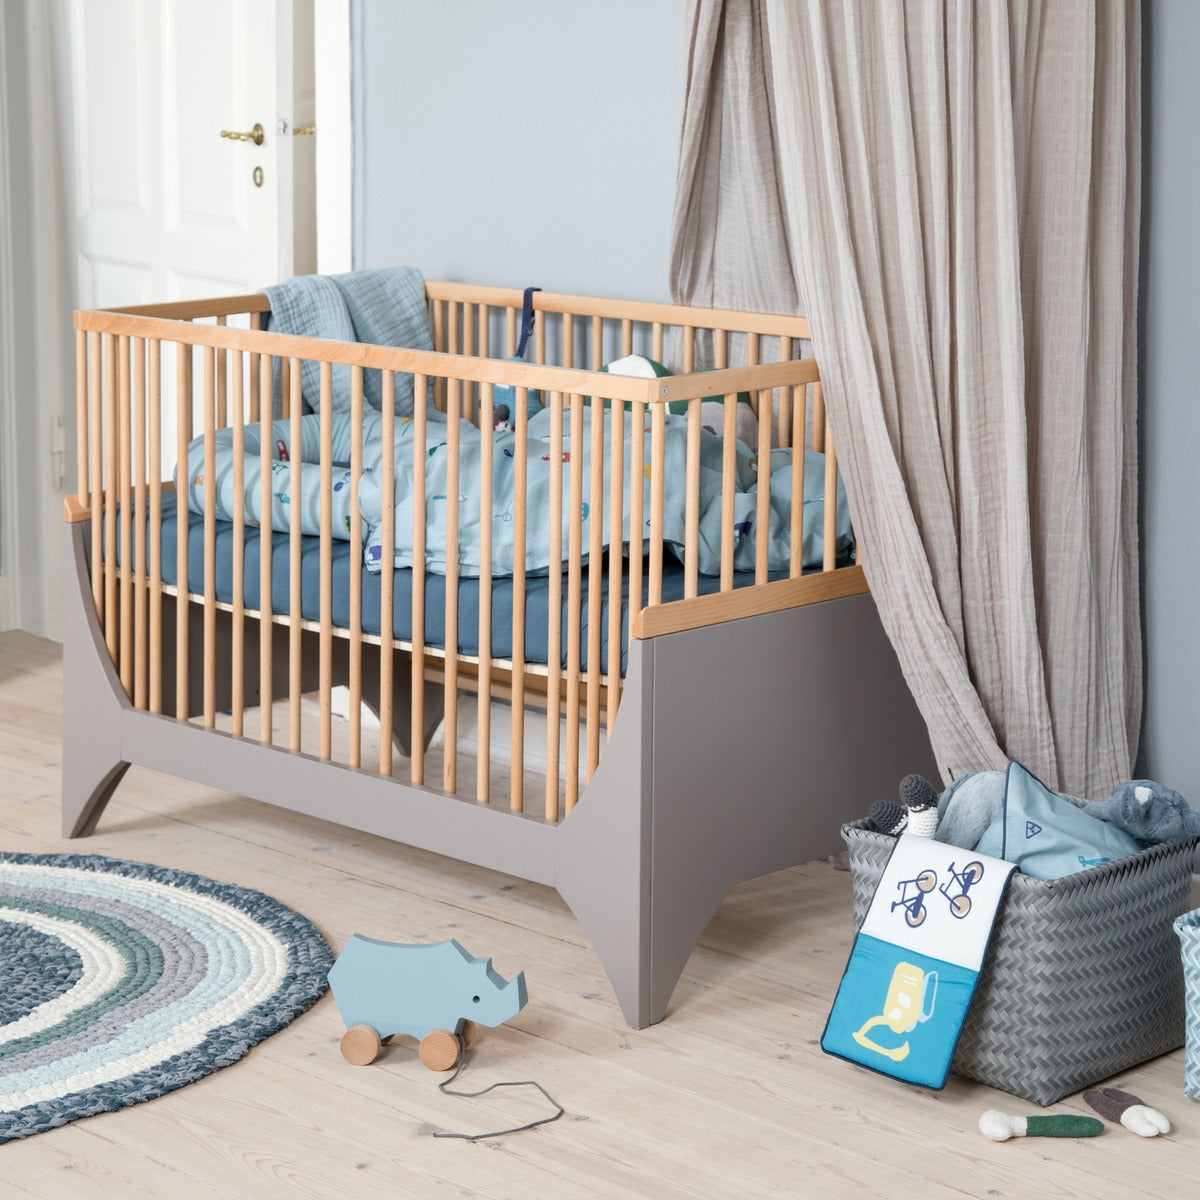 sebra yomi baby und kinderbett set online kaufen. Black Bedroom Furniture Sets. Home Design Ideas